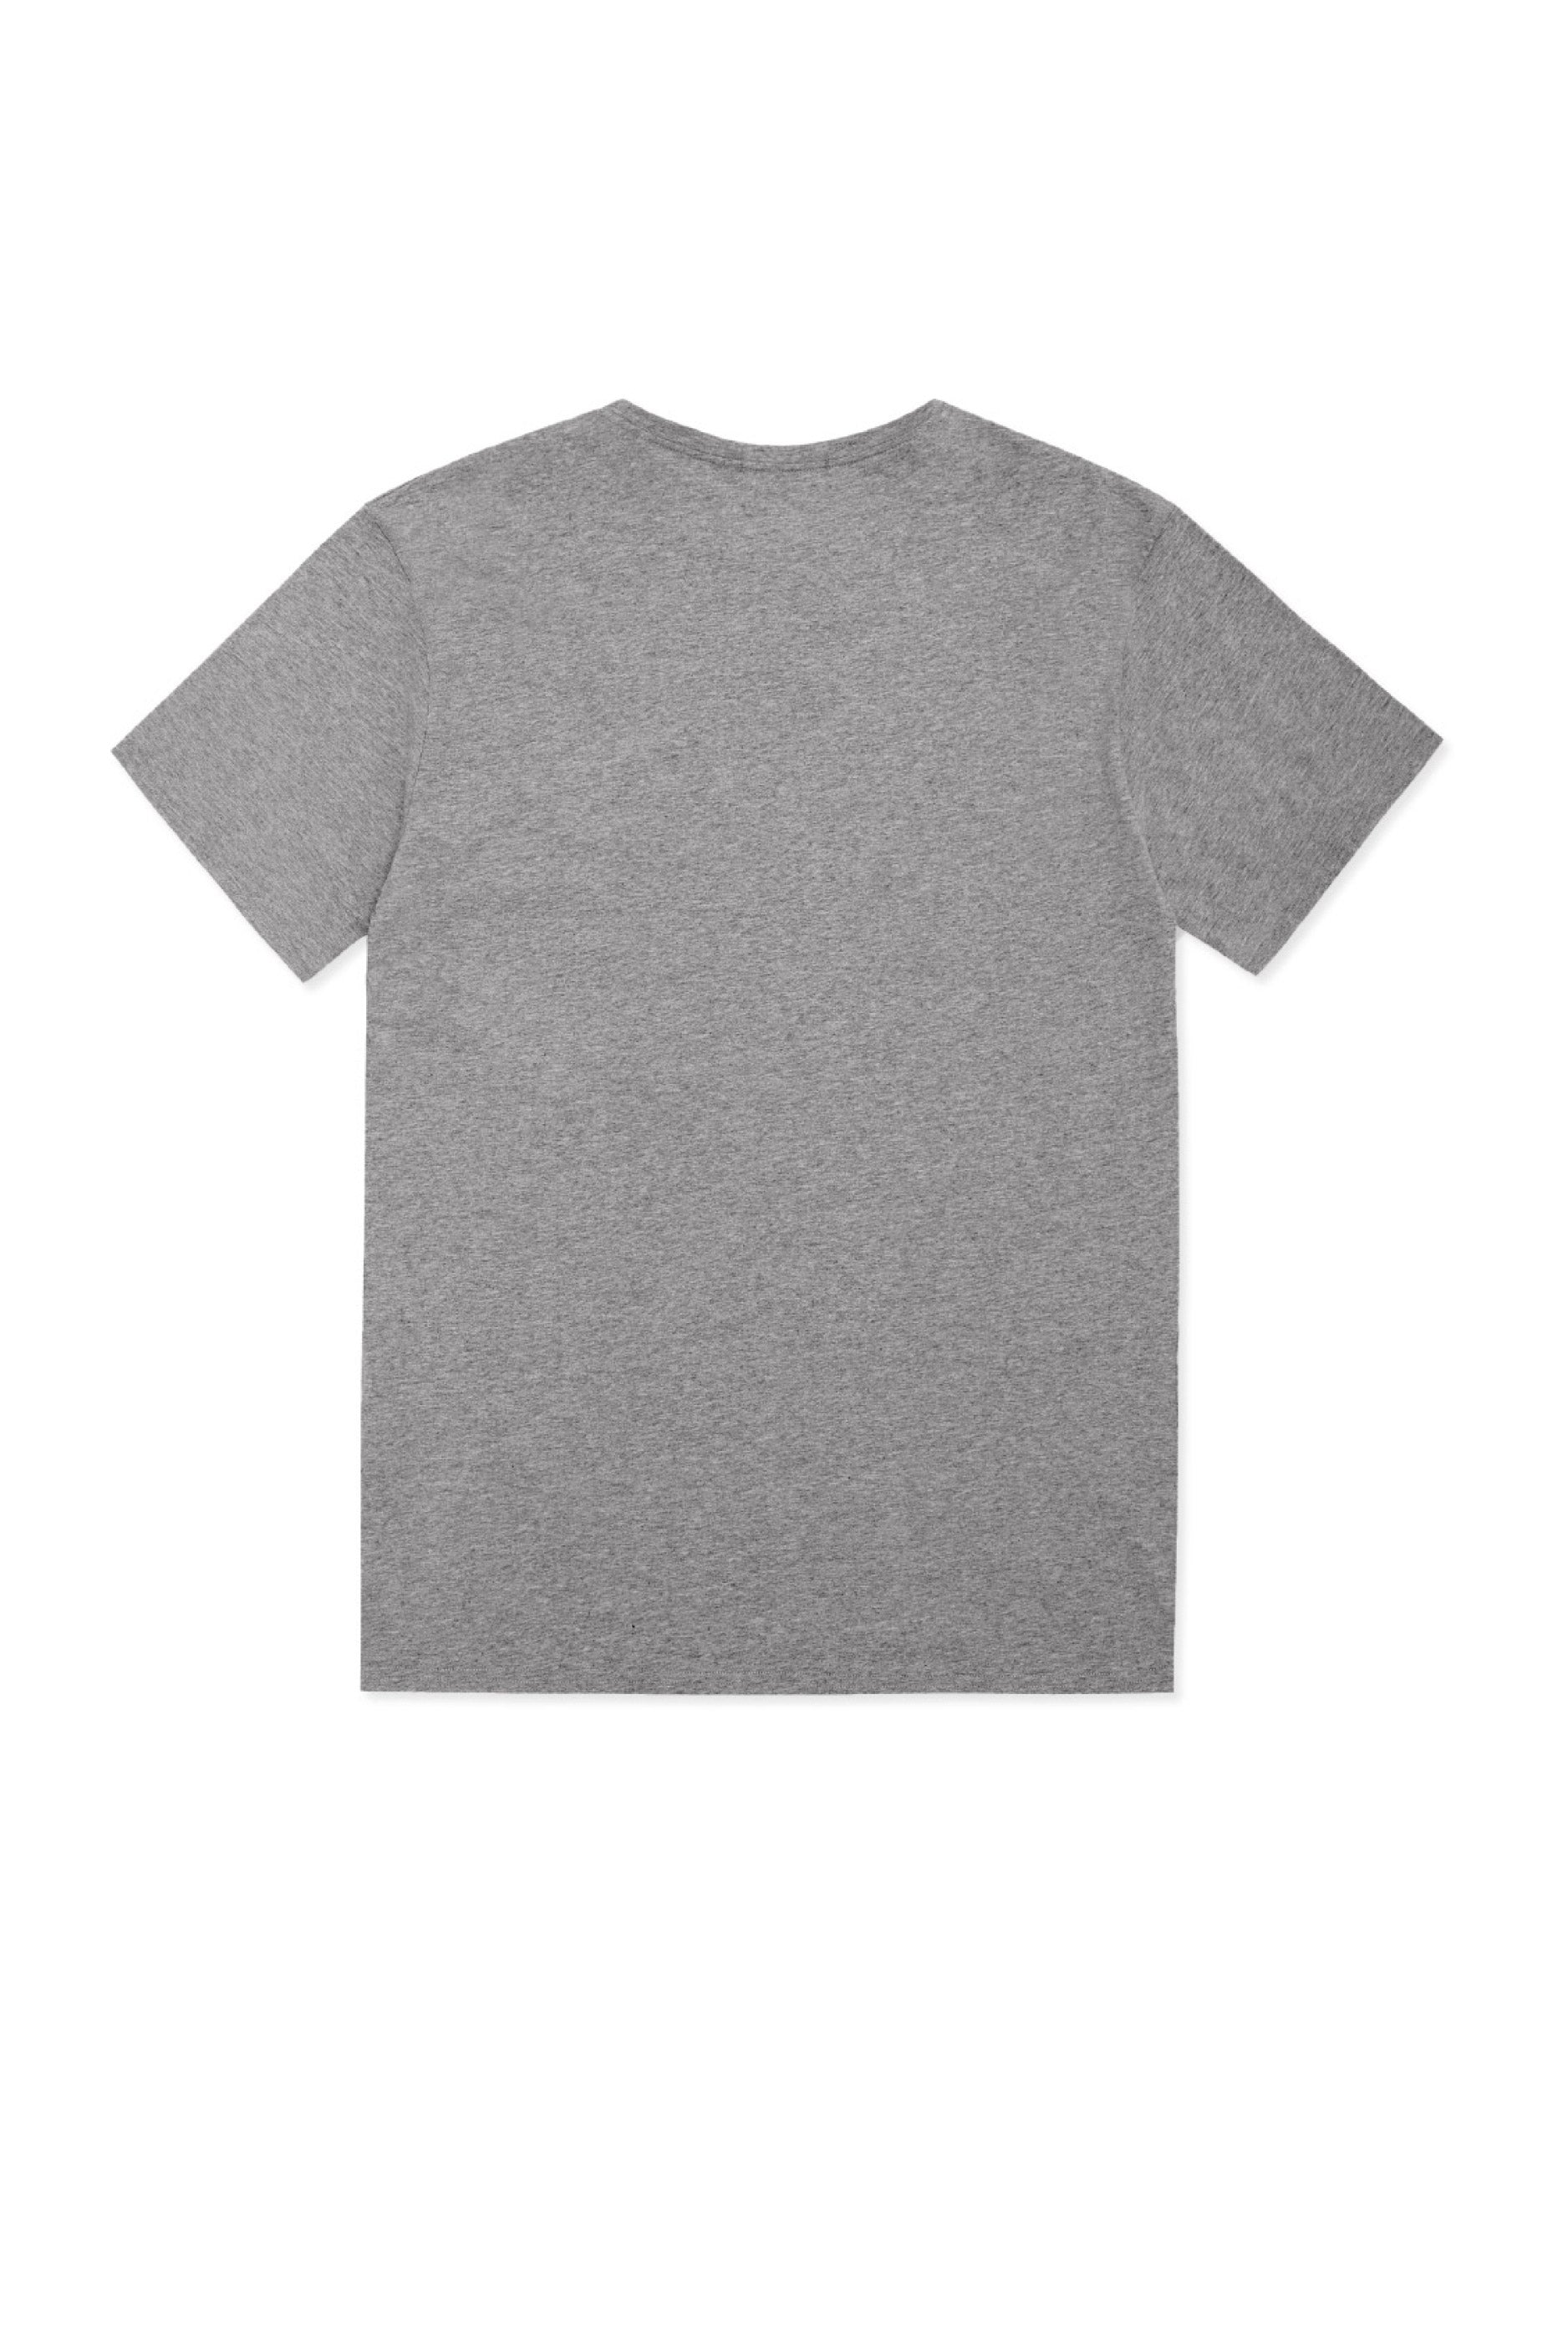 Grey T-shirt - R&W Sneaker Laced UP Print